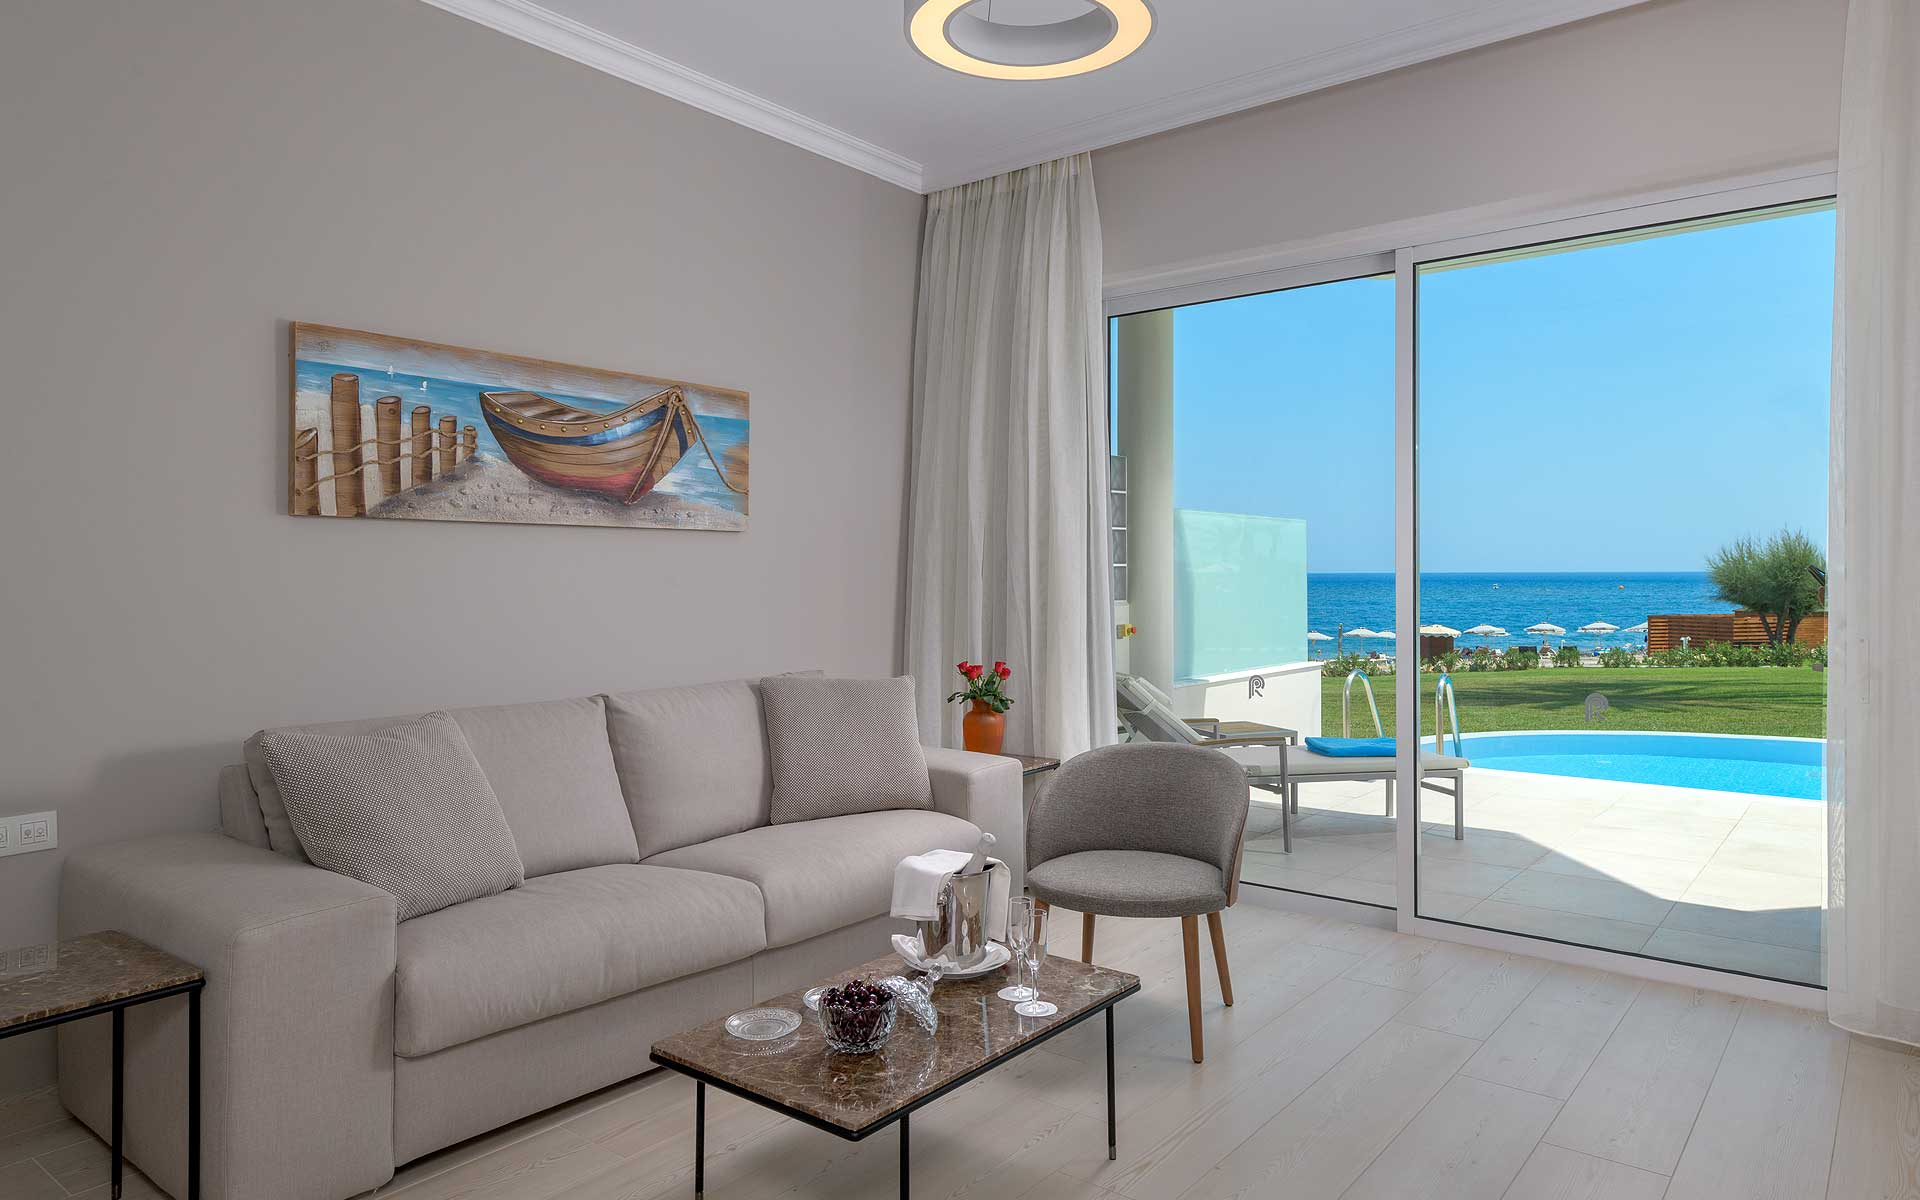 Executive Room with Private Pool - Living Area